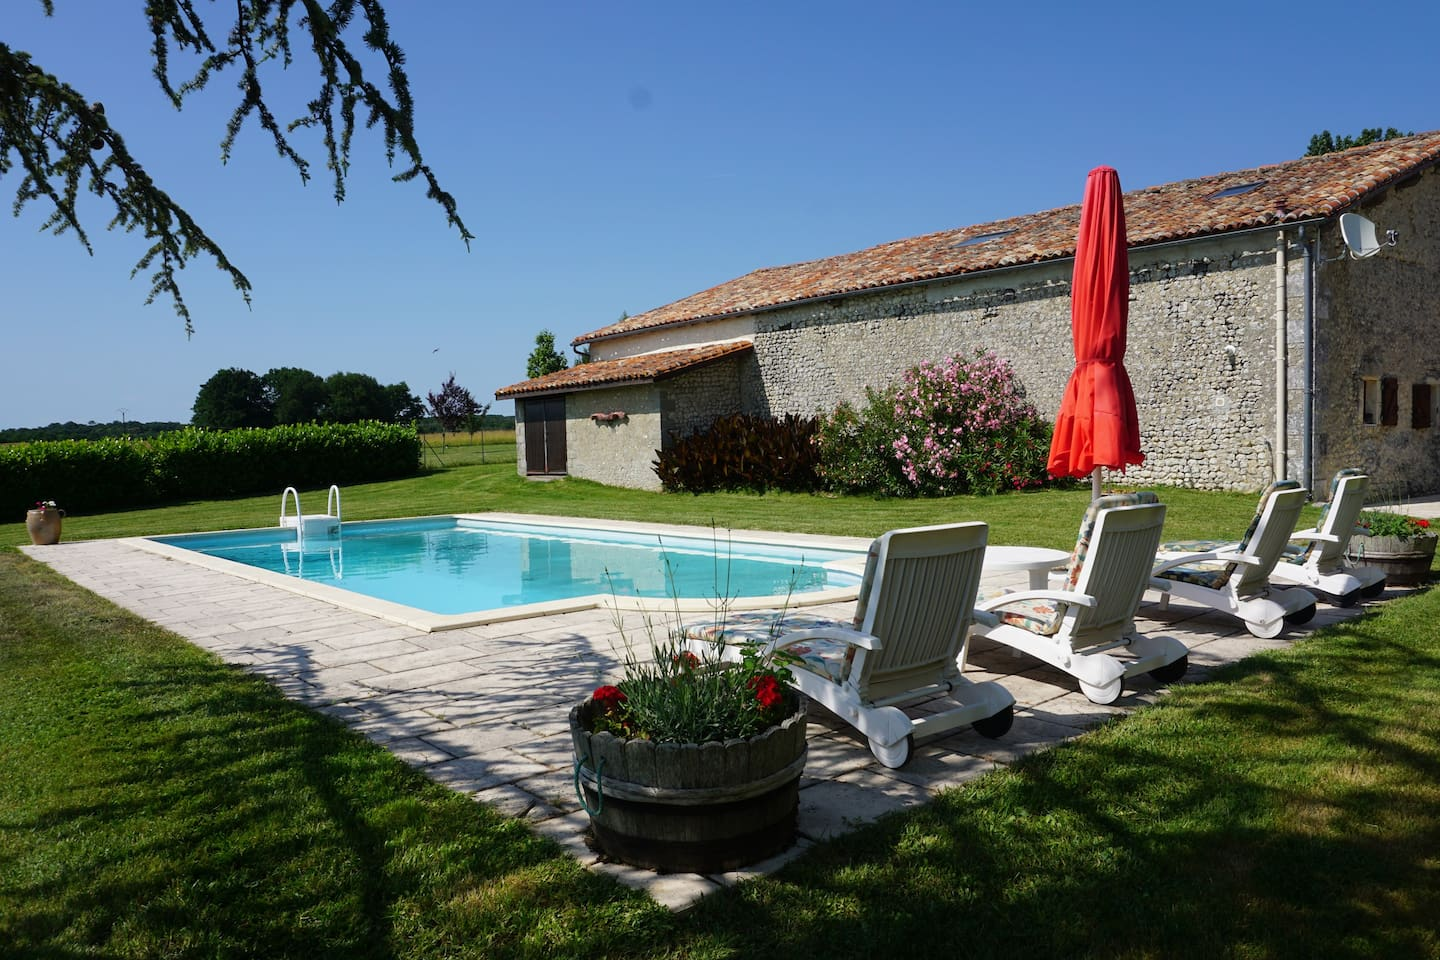 Private swimming pool with terrace and views across the countryside